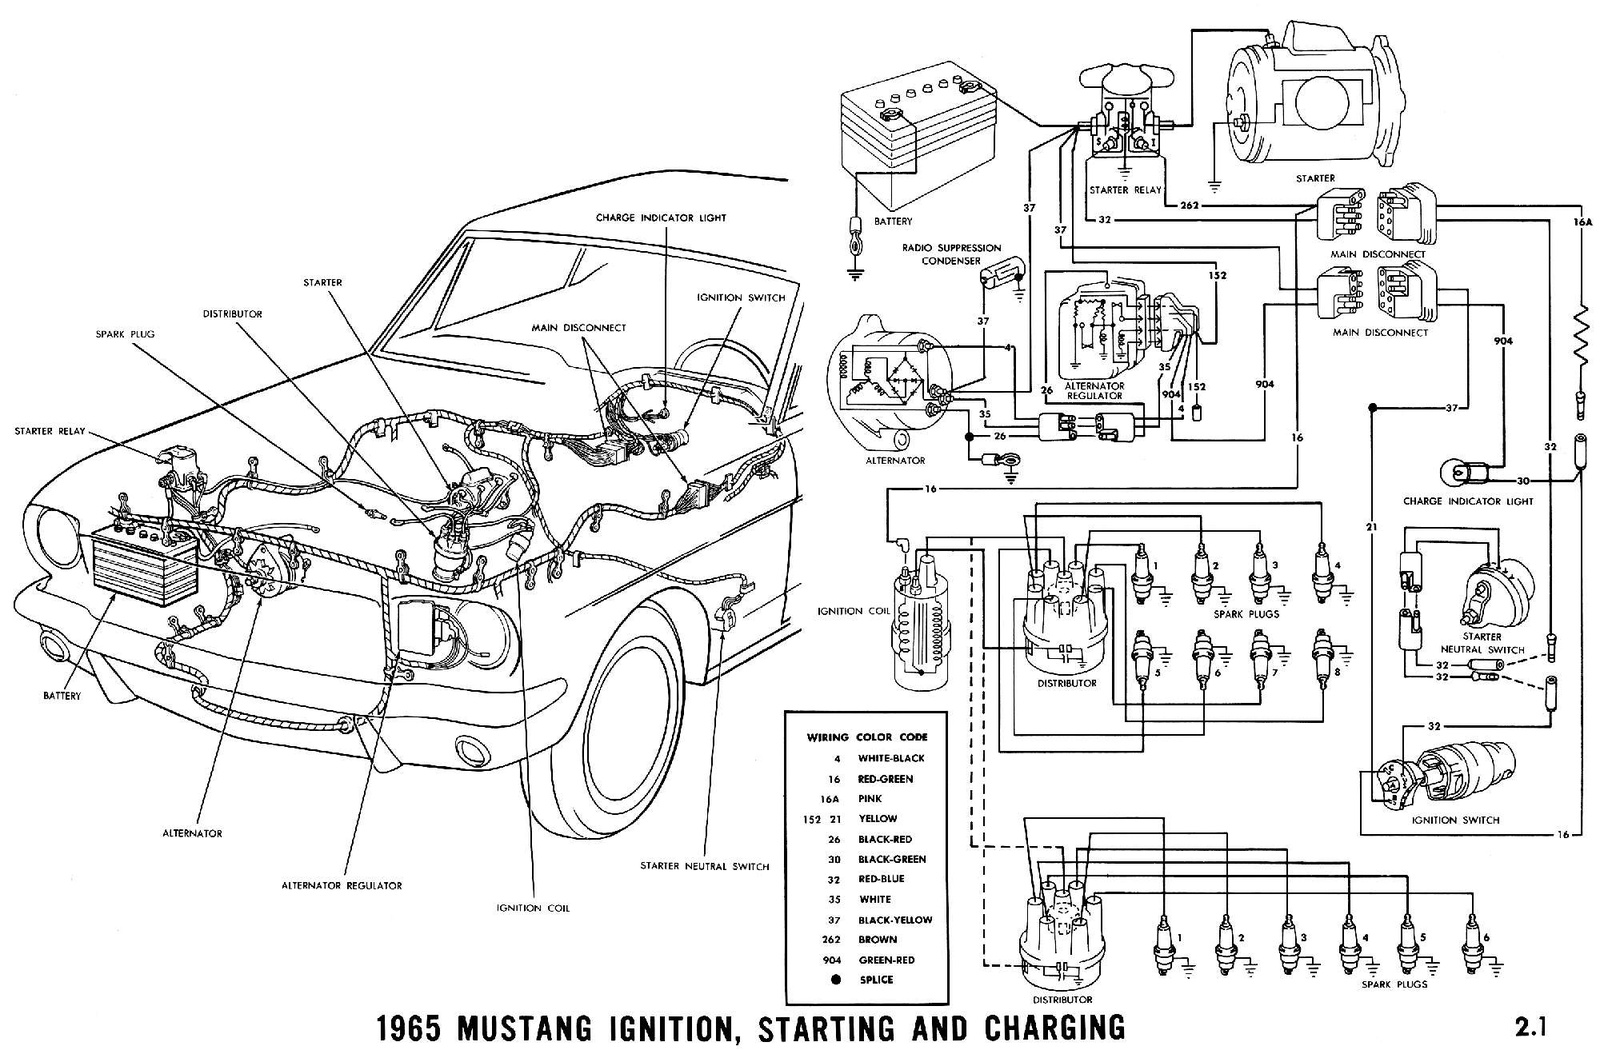 hight resolution of 2005 mustang wiper motor wiring diagram wiring library 1966 ford mustang alternator wiring diagram 1 answer